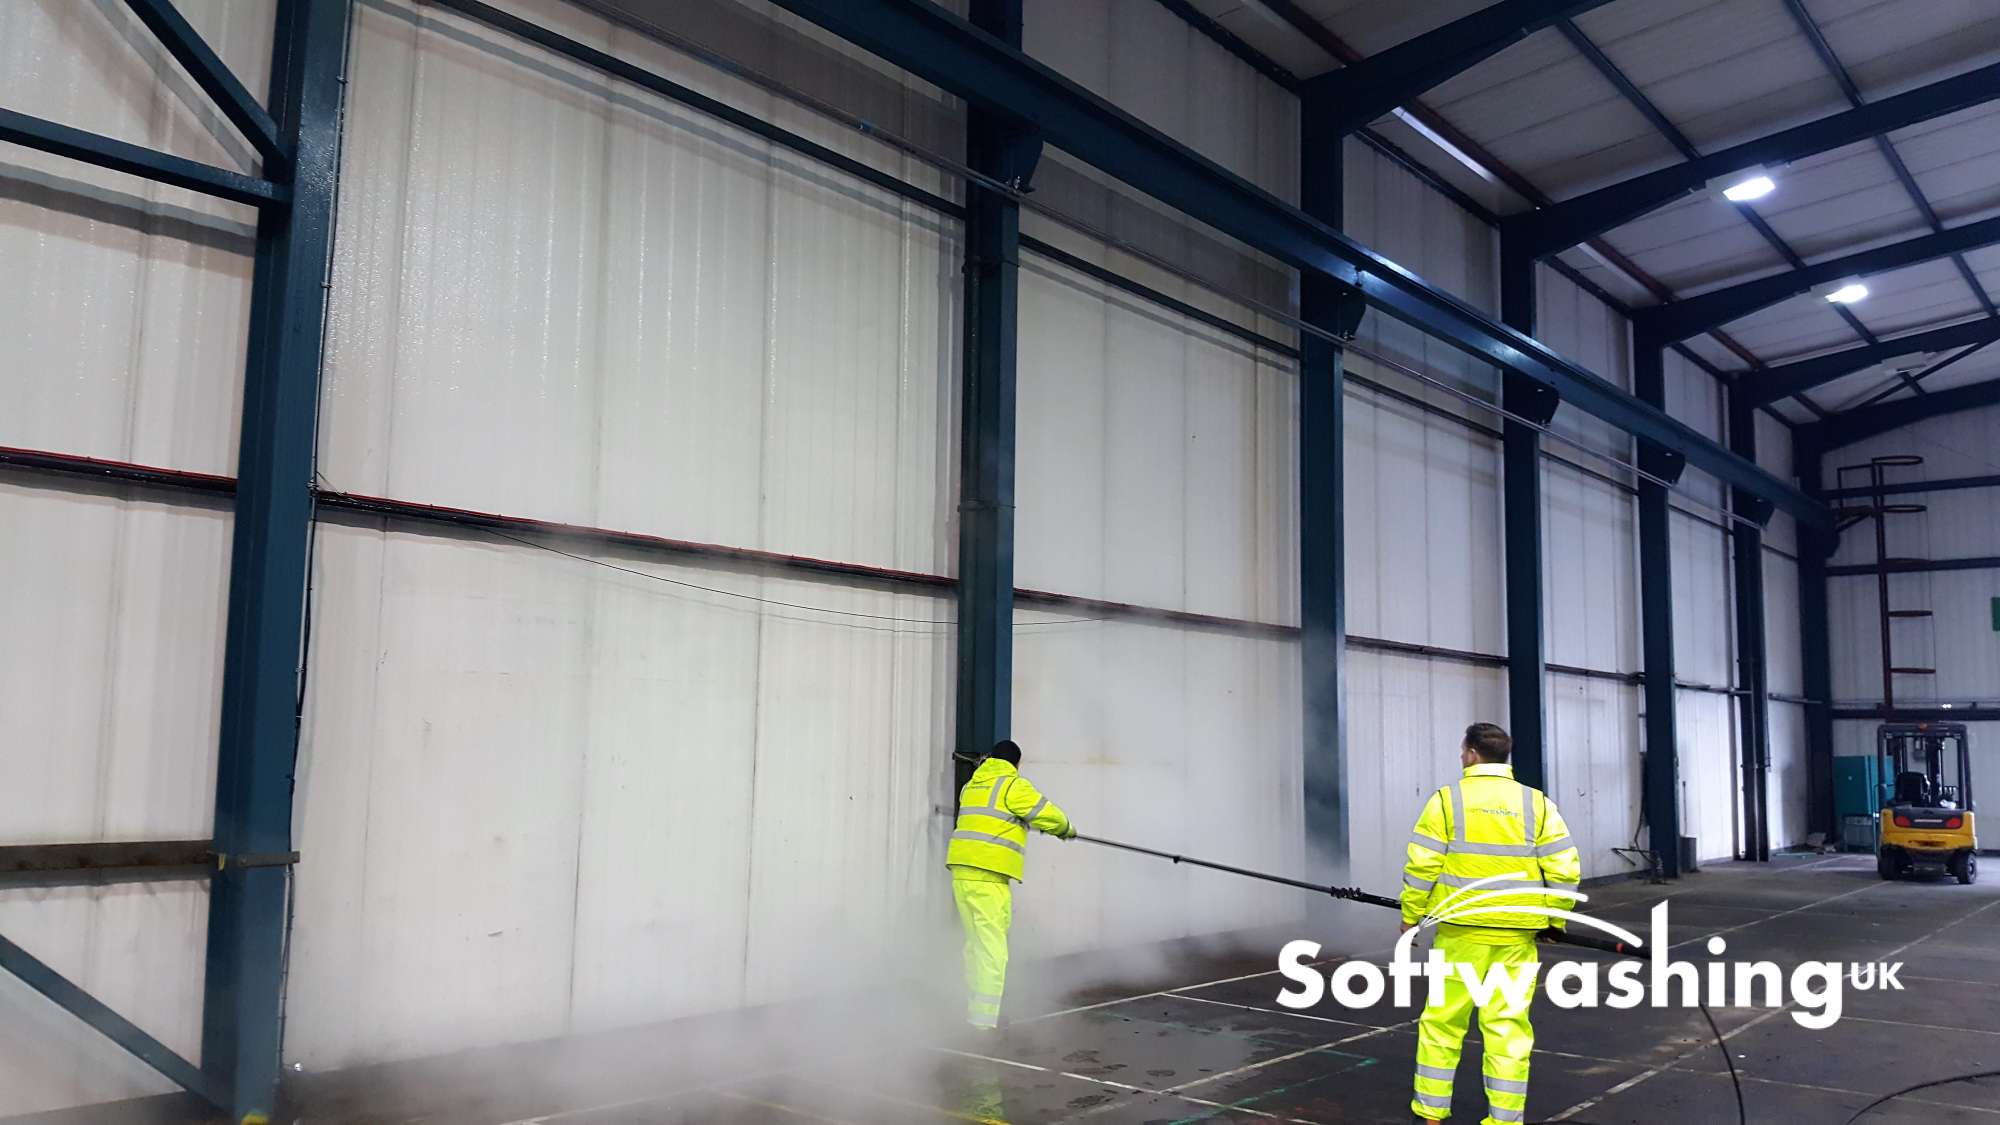 Softwashing uk industrial cladding concrete cleaning for Industrial concrete cleaner